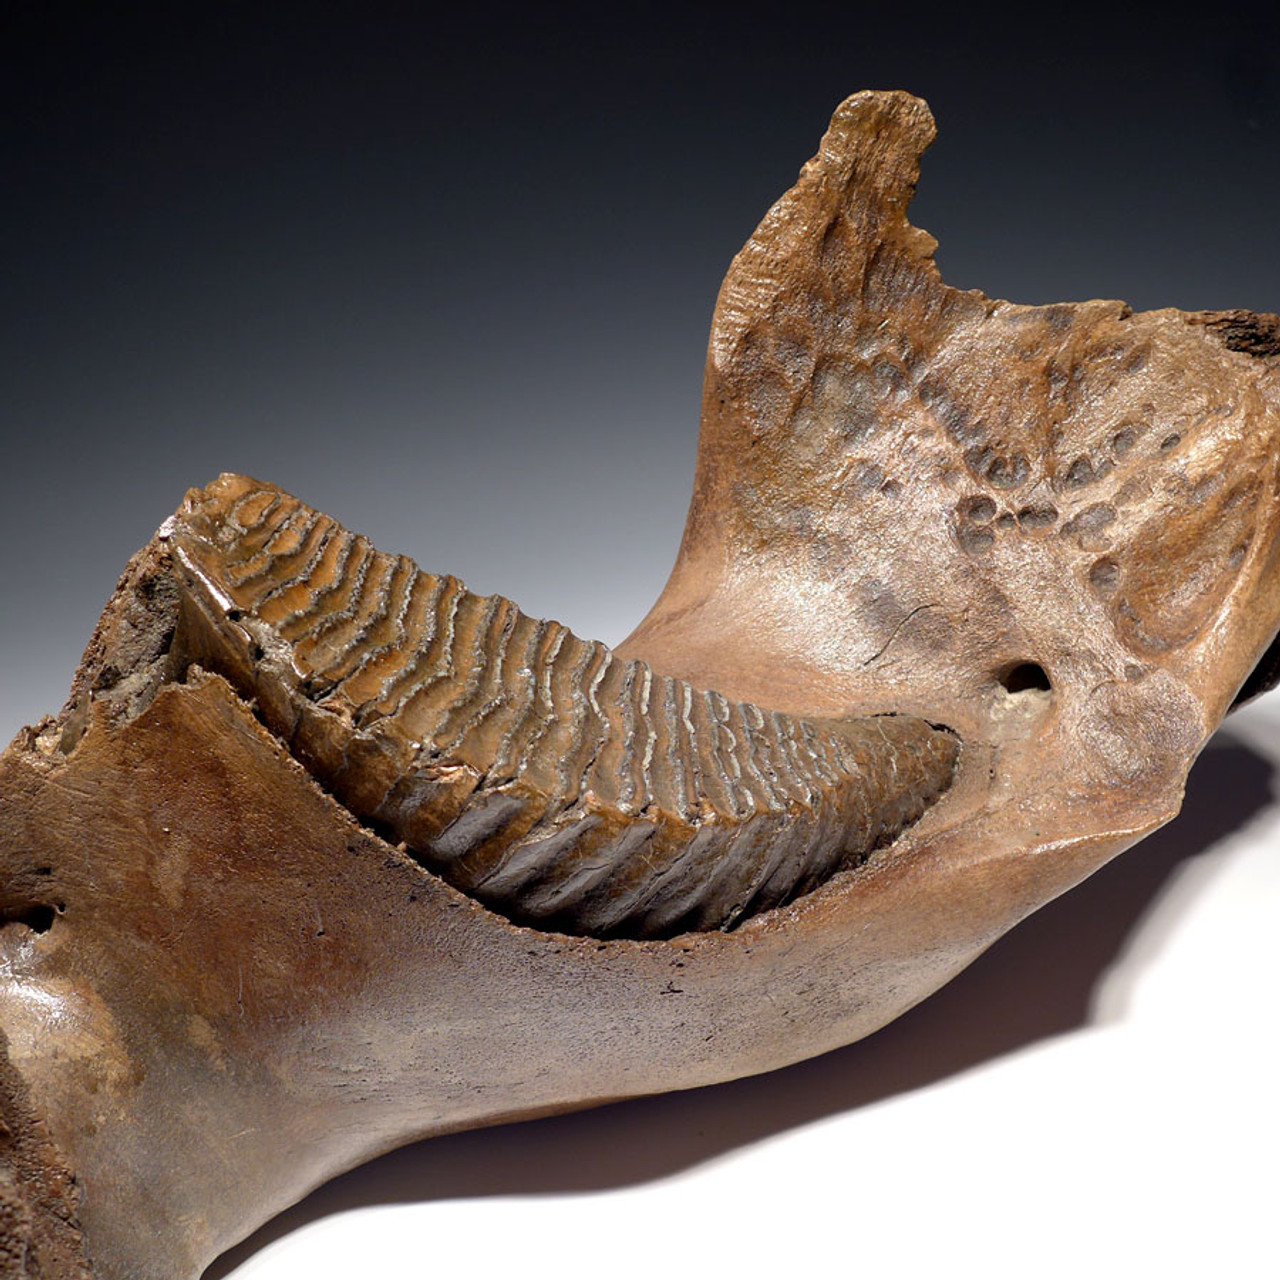 WMX002 - LARGE CENTRAL EUROPEAN WOOLLY MAMMOTH JAW WITH HUGE MOLAR IN FINEST PRESERVATION